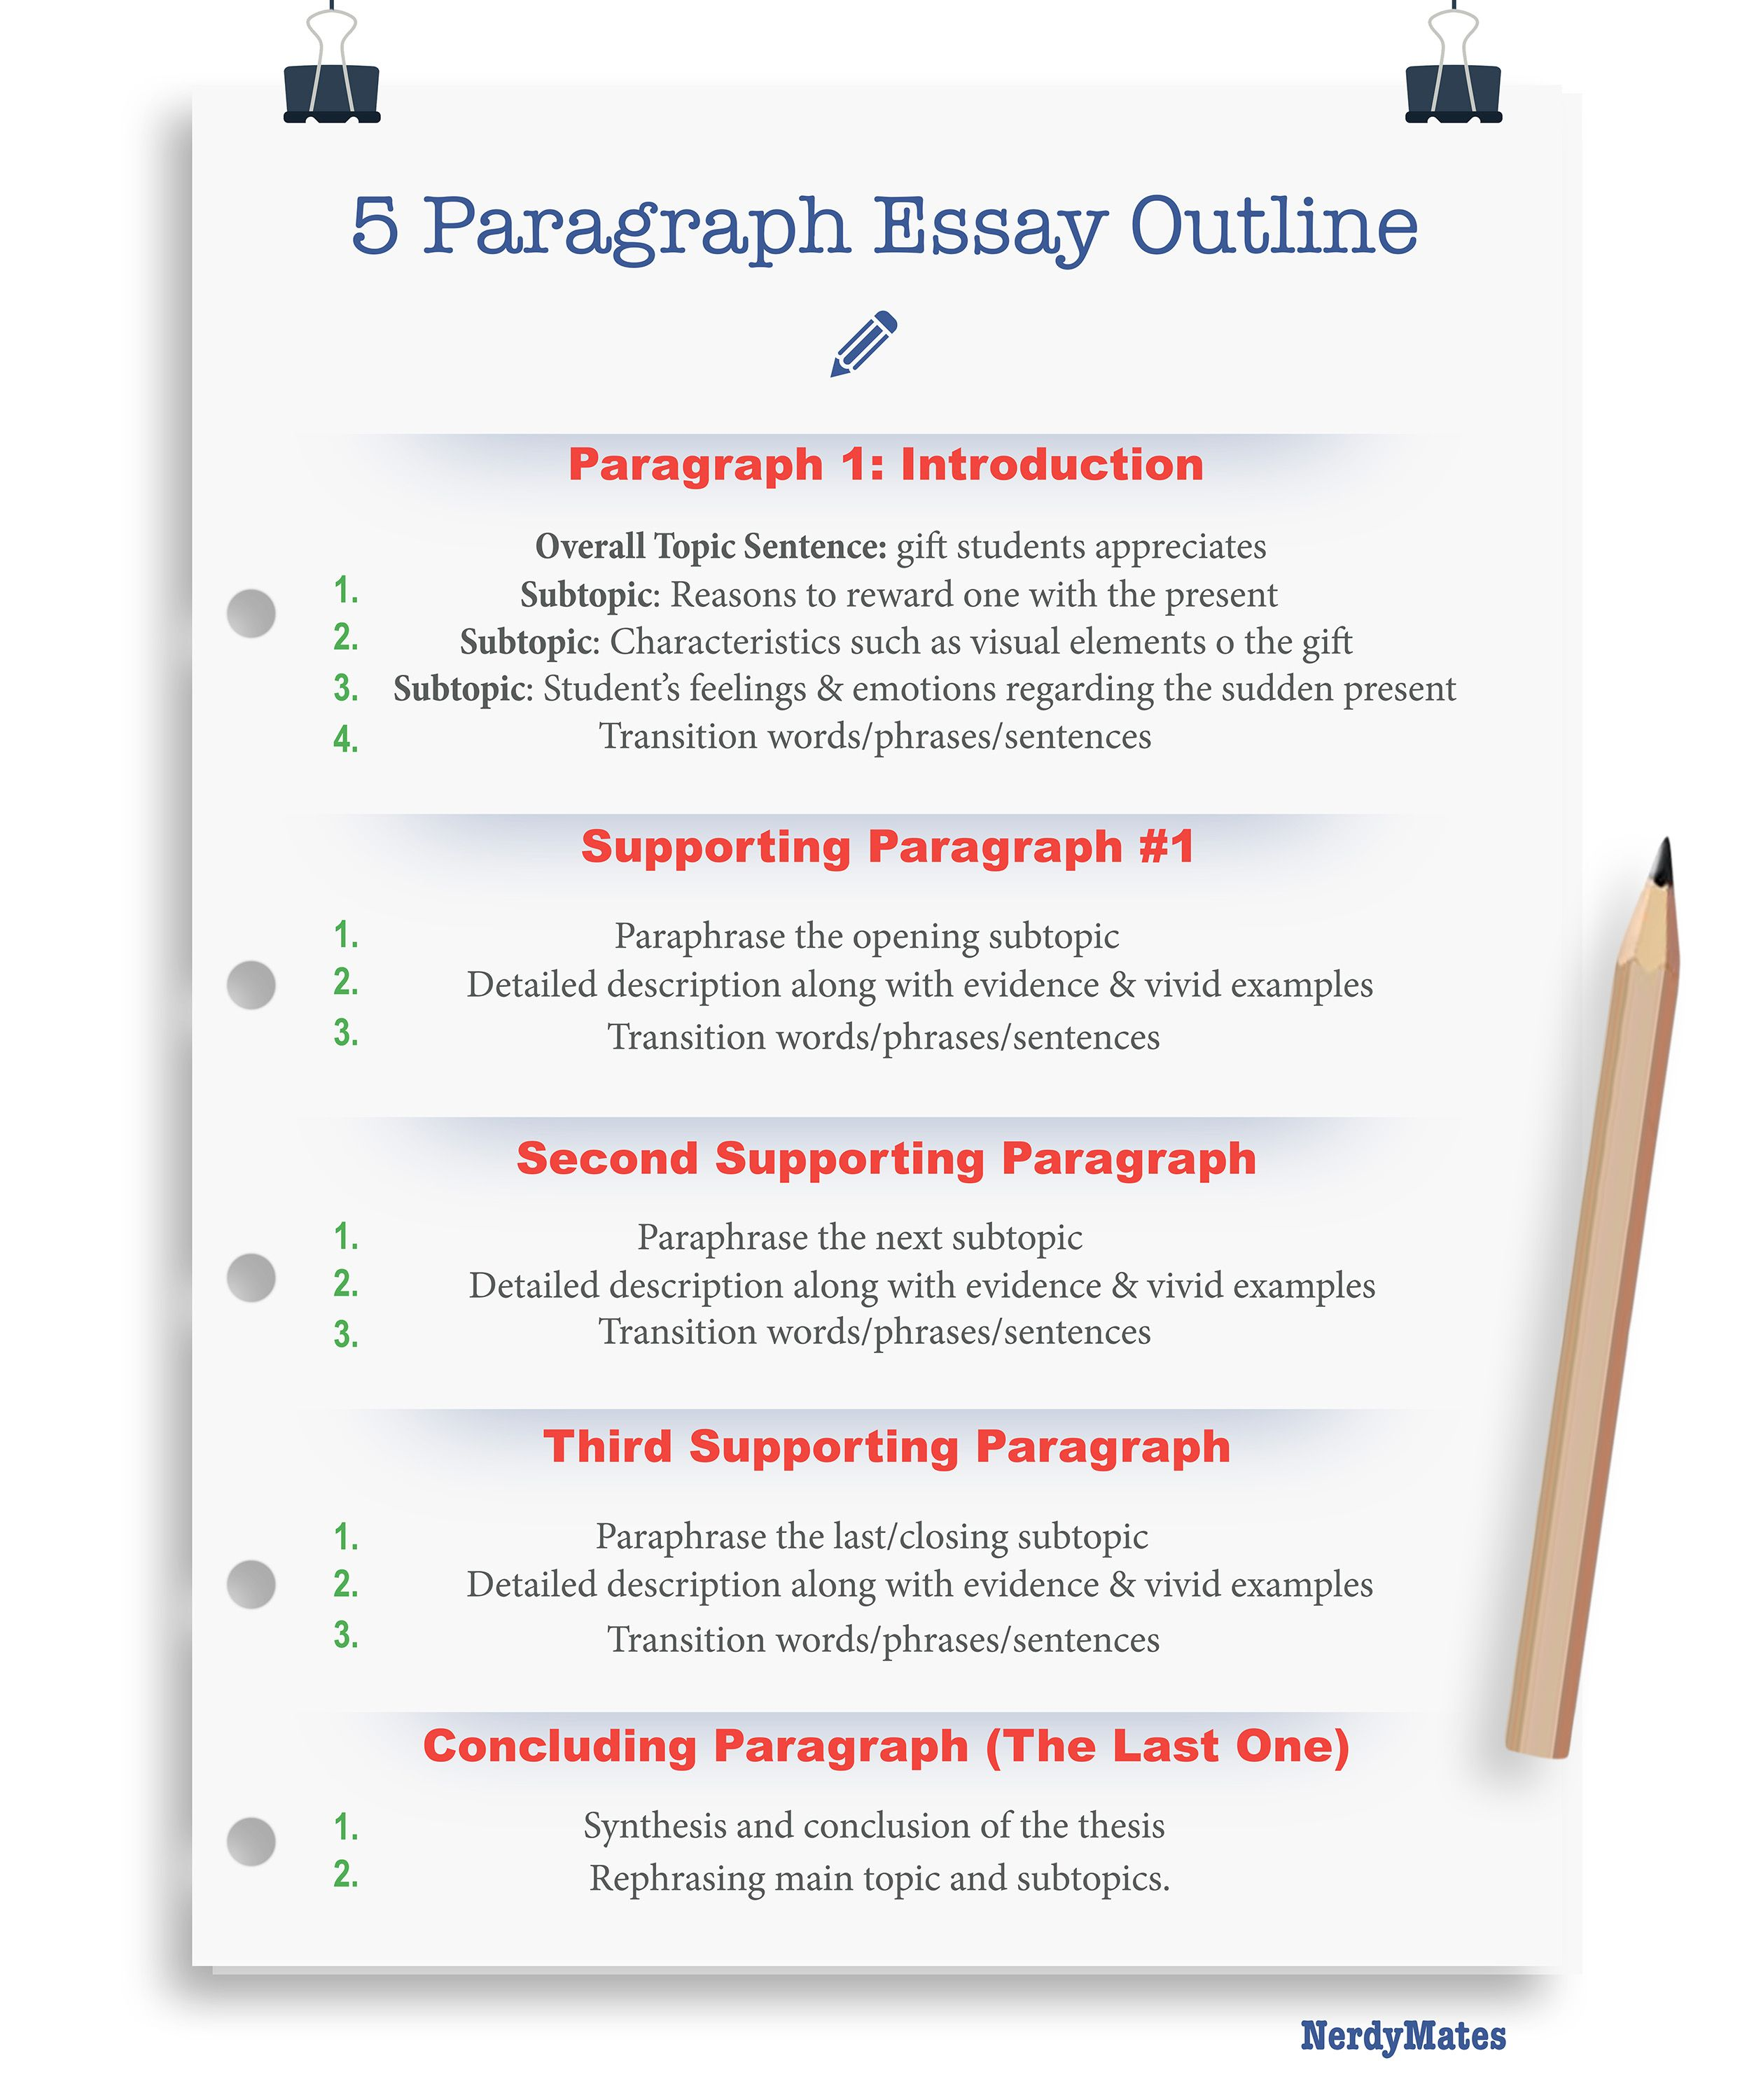 5 Paragraph Essay What Is It And How To Write It